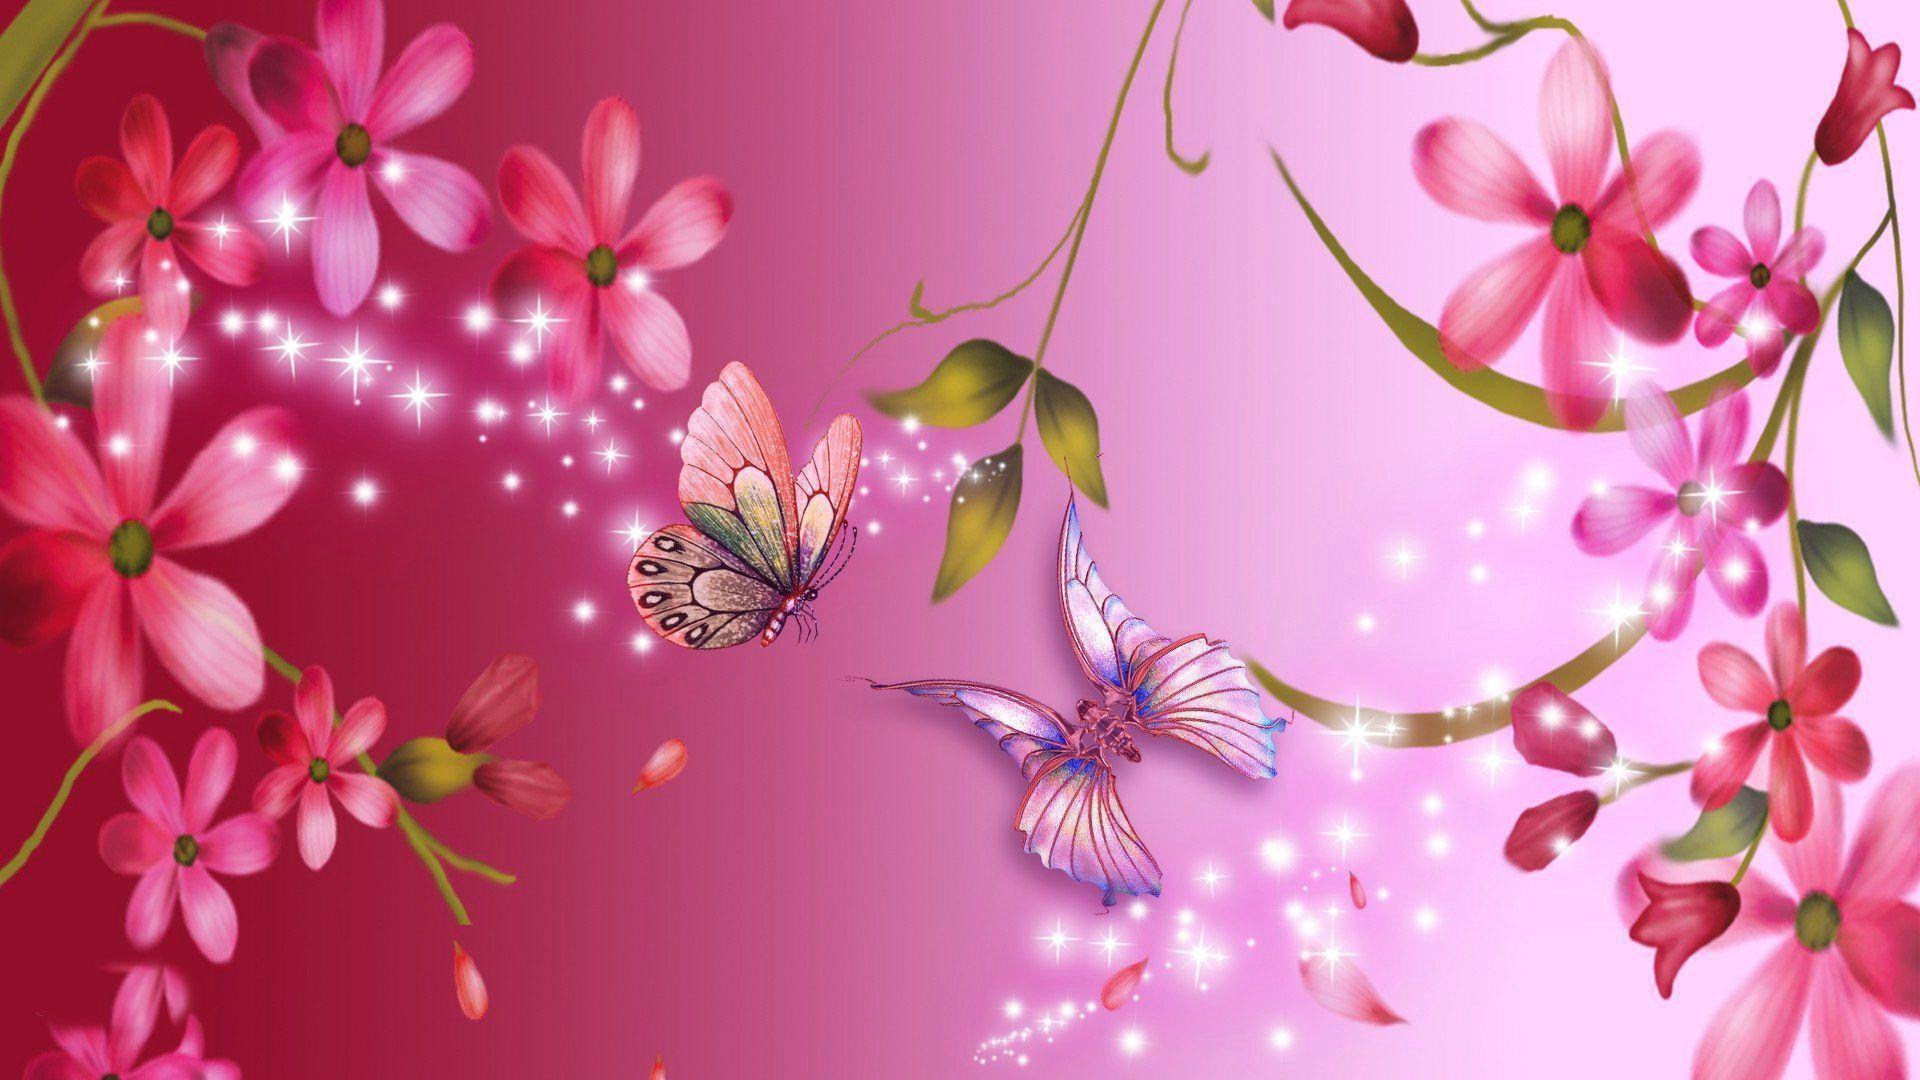 Wallpaper's Collection: «Pink Flowers Wallpapers»